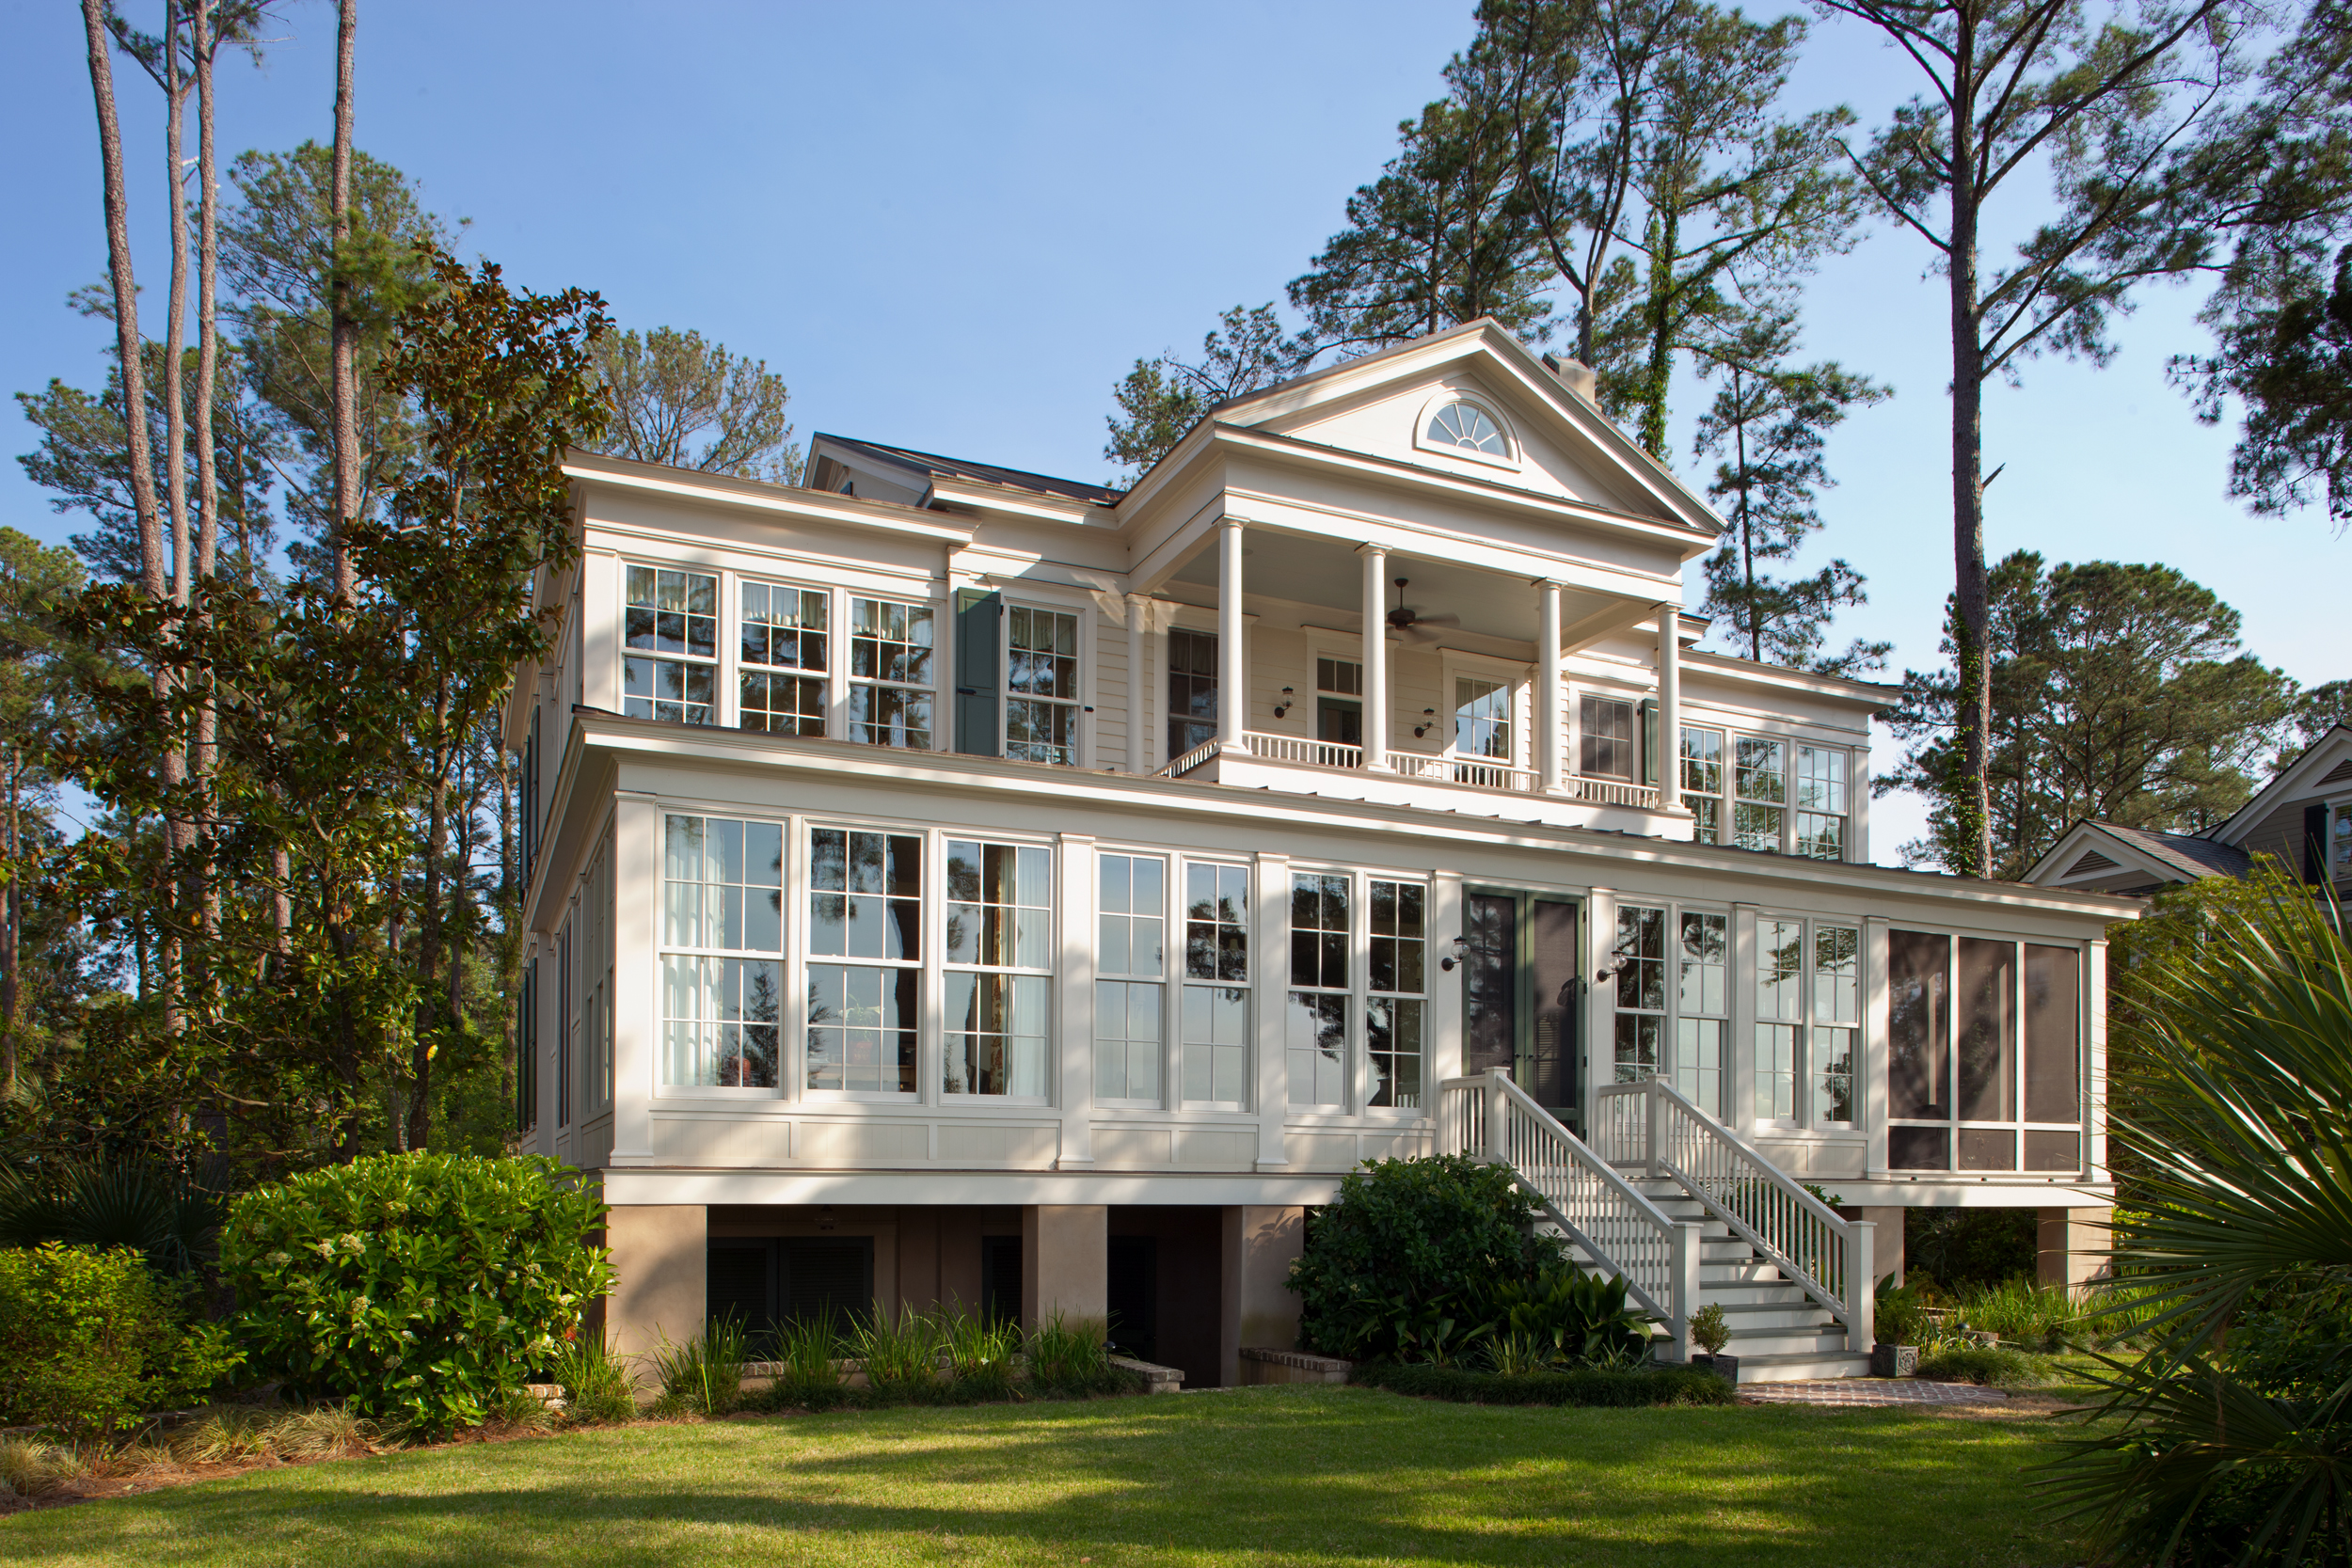 Beaufort Sc Waterfront Homes For Sale Real Estate Spring Island